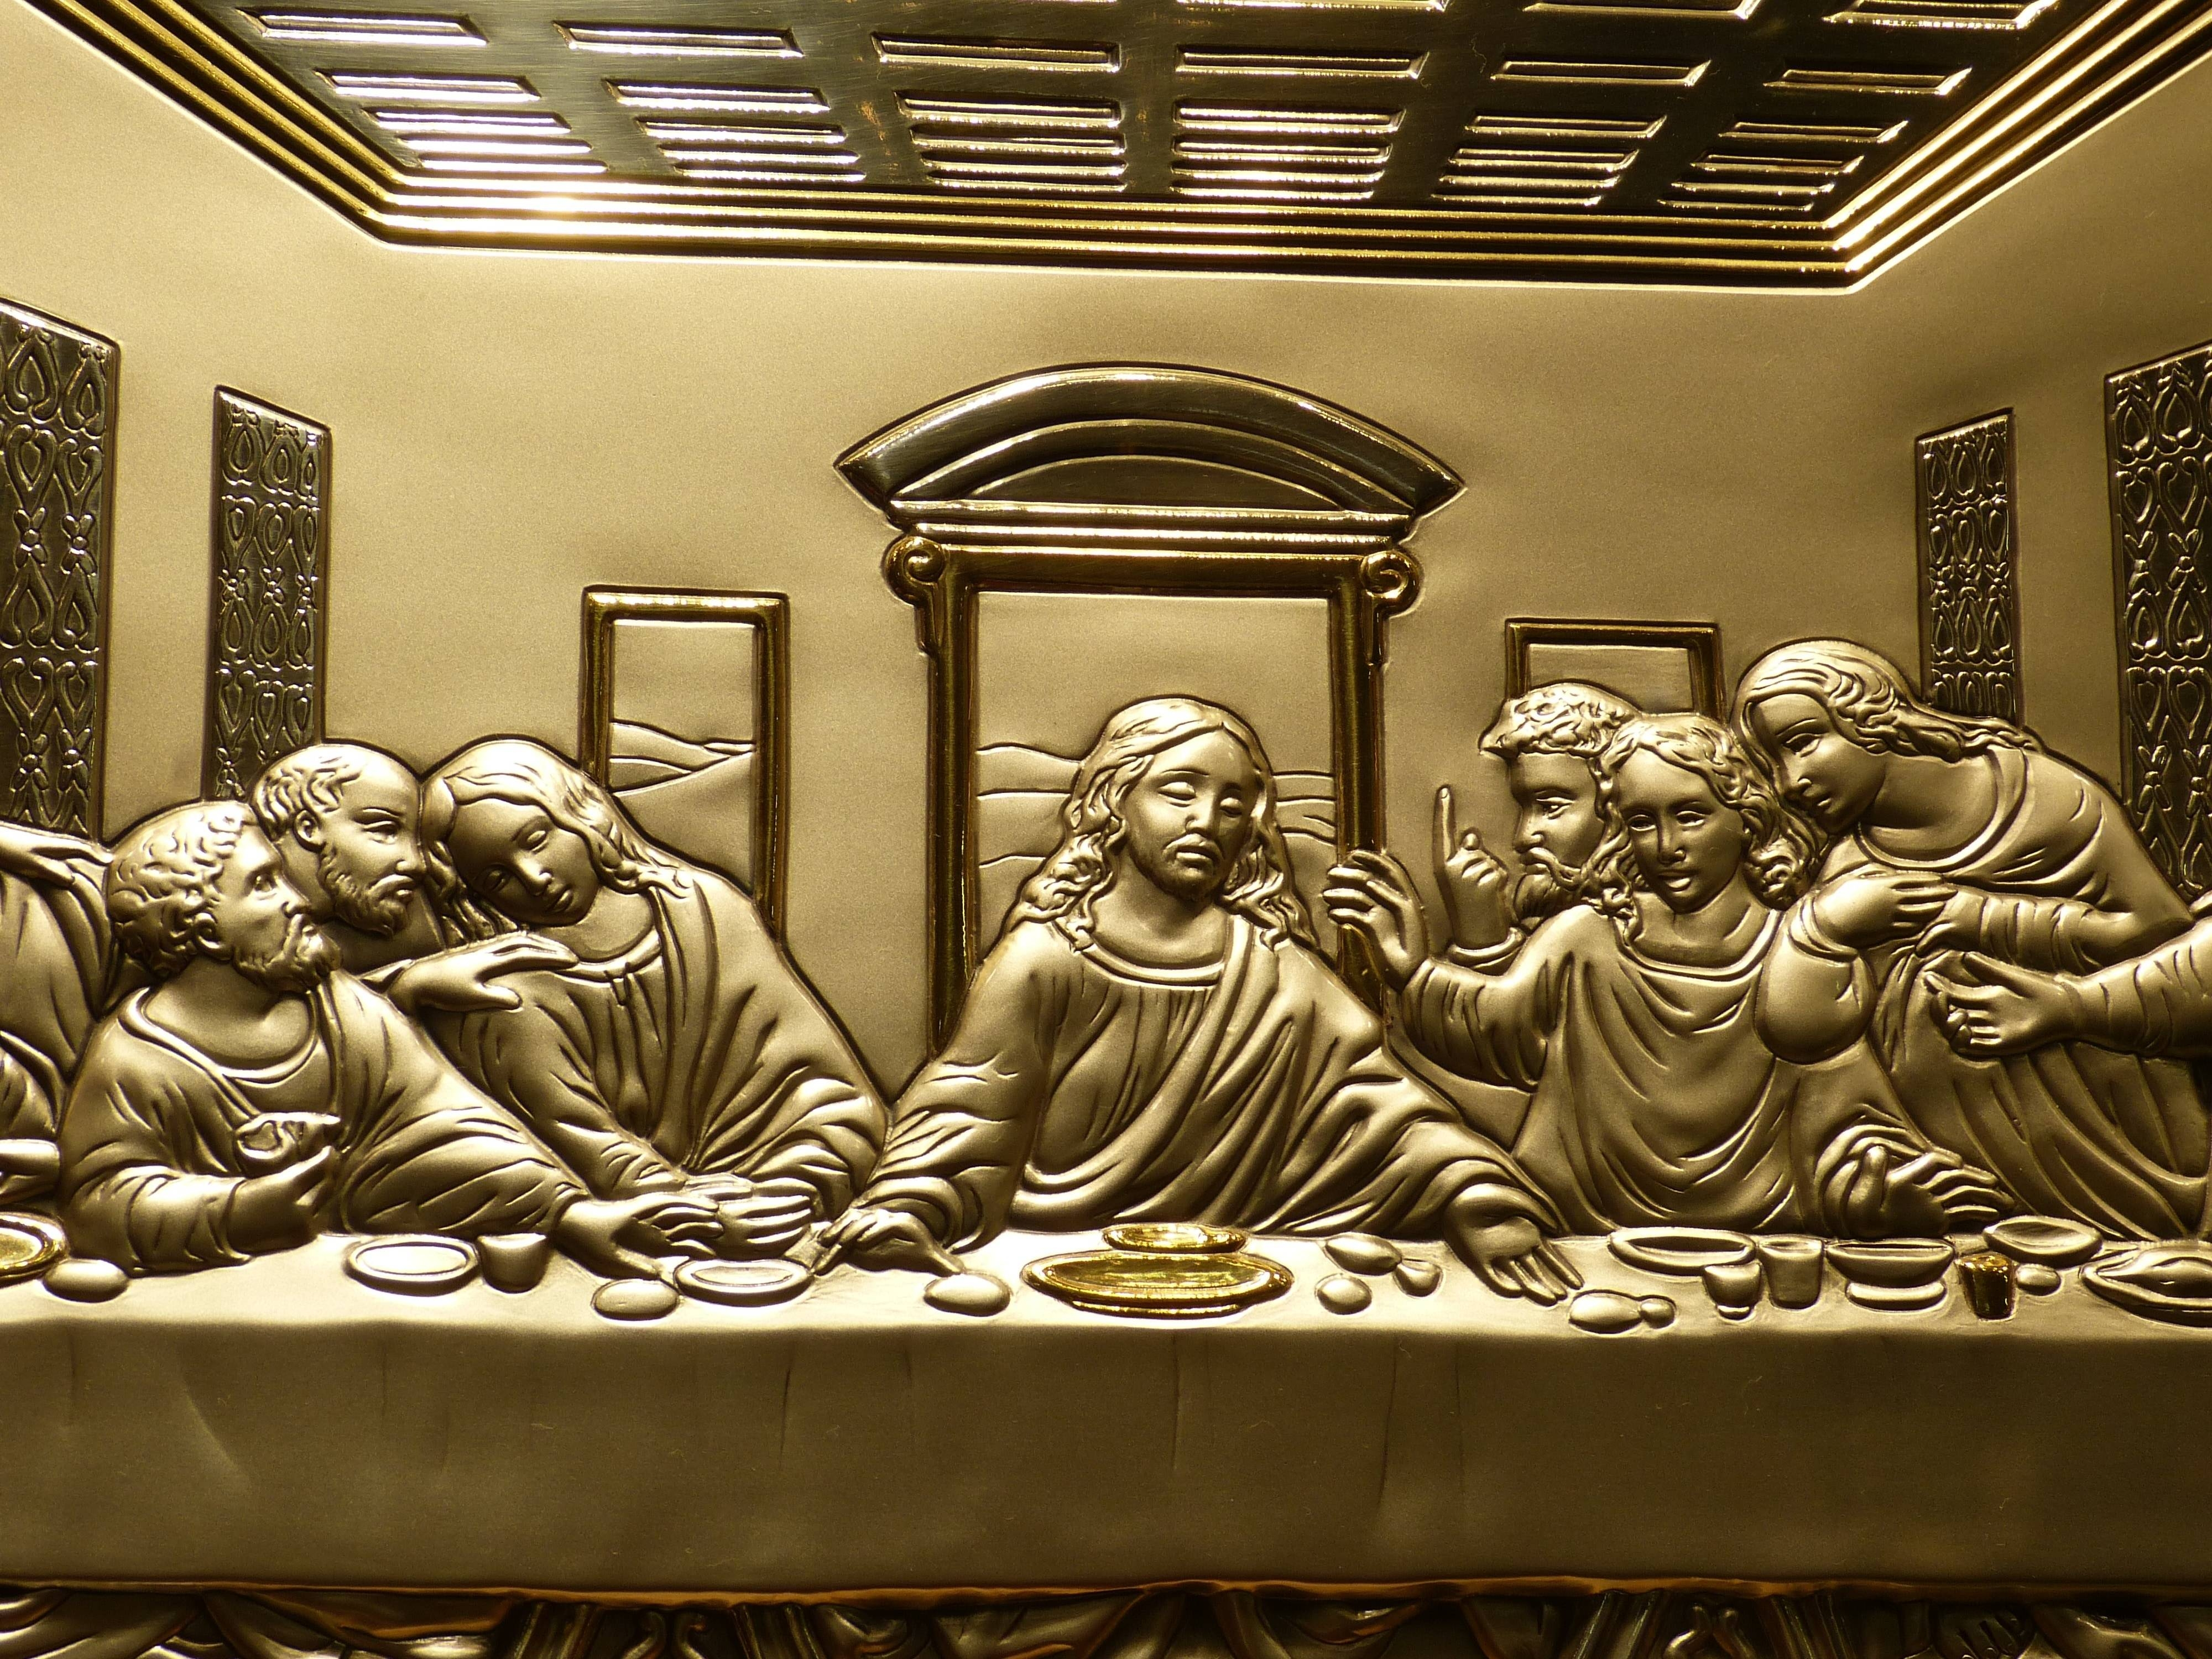 The Last Supper Gold Wall Art Free Image | Peakpx In 2018 Last Supper Wall Art (View 10 of 20)